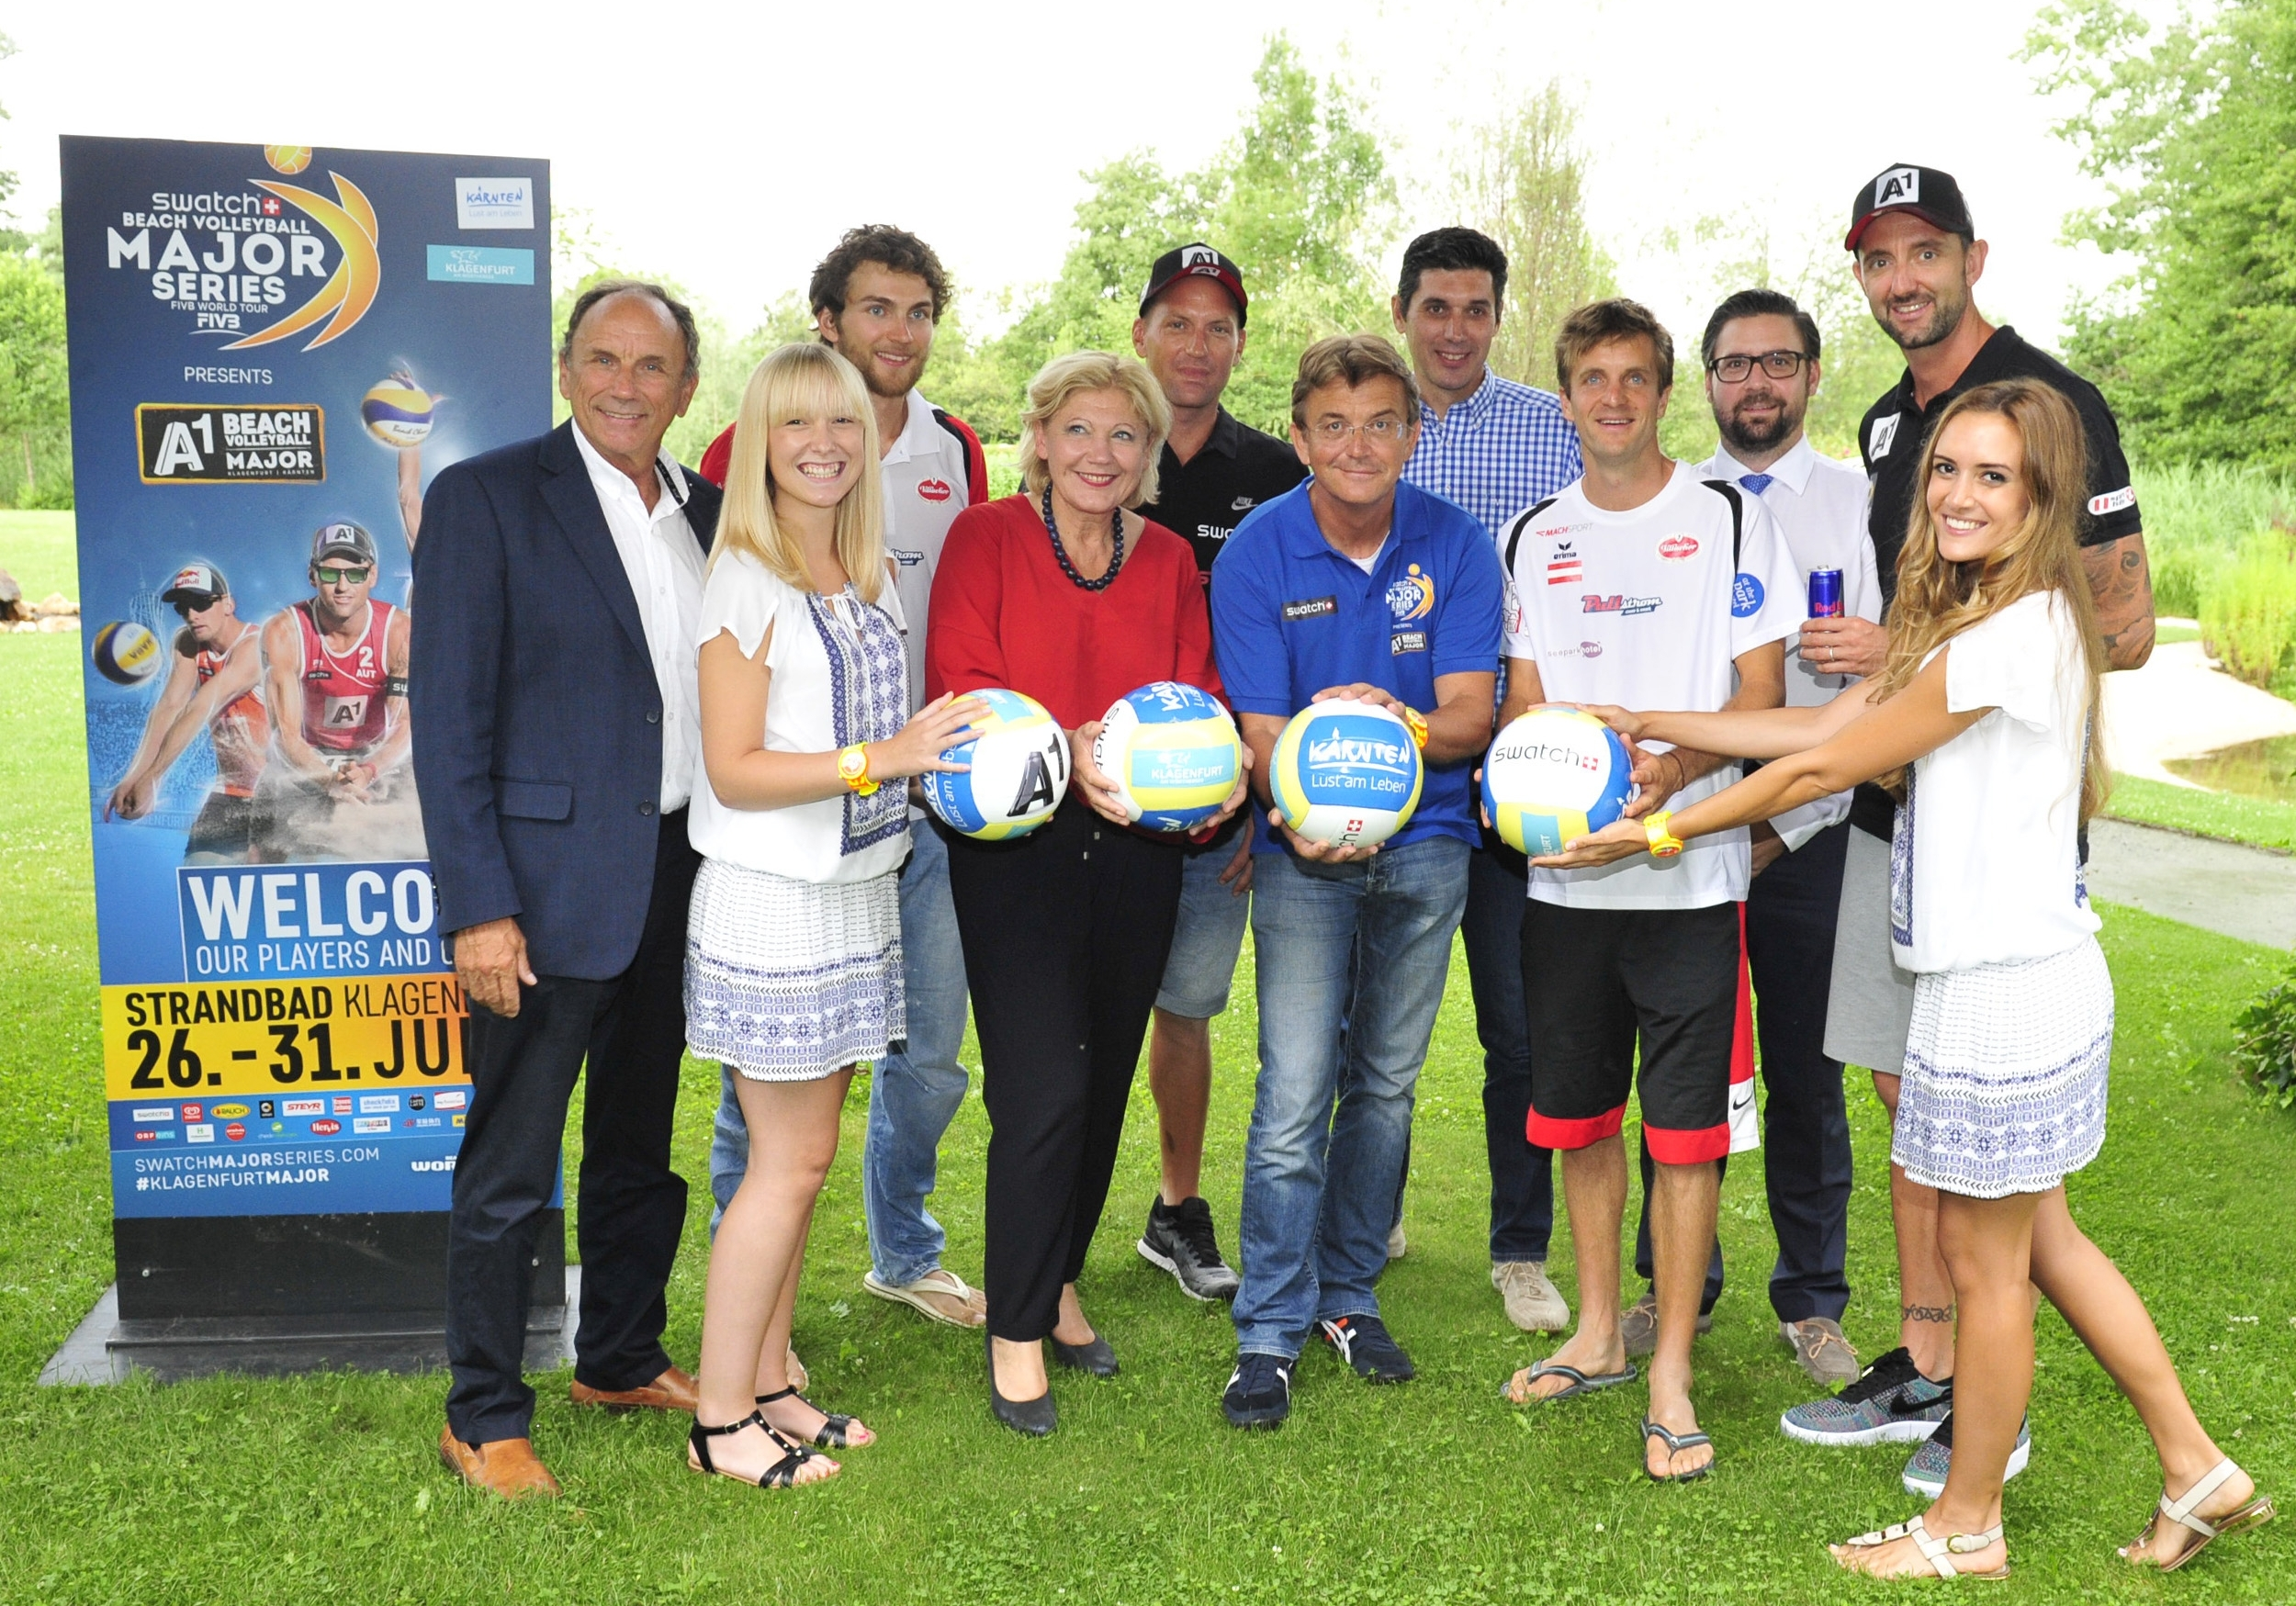 Left to right:  Mag. Otto Umlauft (Member of the City Council, ÖVP, Departments: City Planning, Economics, Tourism), Robin Seidl, Maria Luise Mathiaschitz (Major Klagenfurt), Alexander Horst, Hannes Jagerhofer (Founder Swatch Beach Volleyball Major Series),  Mag. Stefan Potyka (Vice President Beach Volleyball of the Austrian Volleyball Federation (ÖVV)), Alexander Huber, Dr. Hannes Florianz (Tournament Doctor, Humanomed), Clemens Doppler